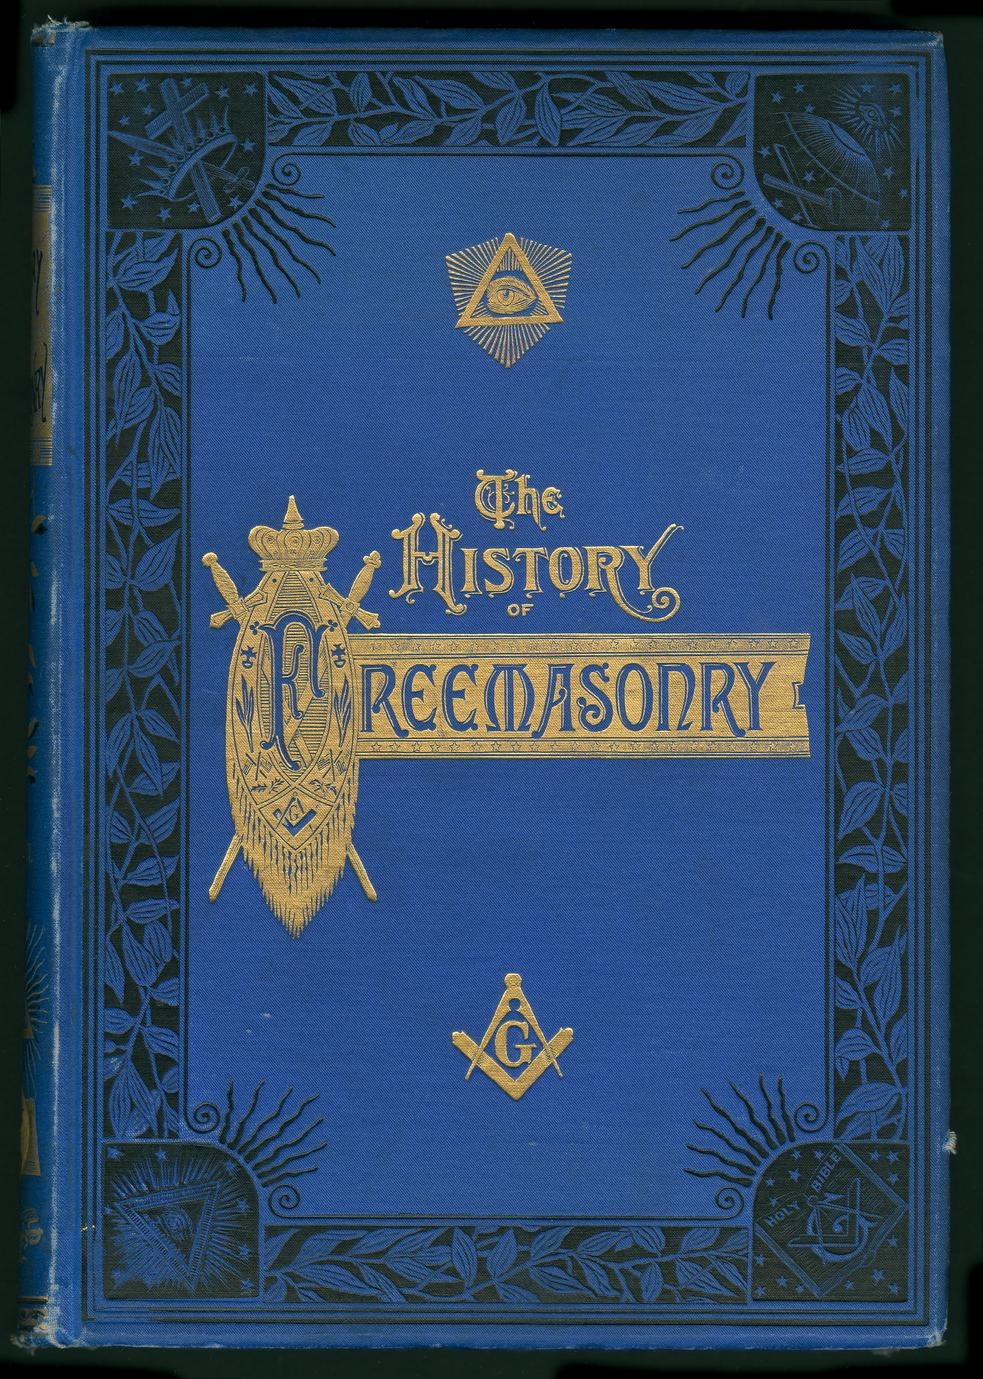 The history of freemasonry, its antiquities, symbols, constitutions, customs, etc., derived from official sources throughout the world (1 of 3)